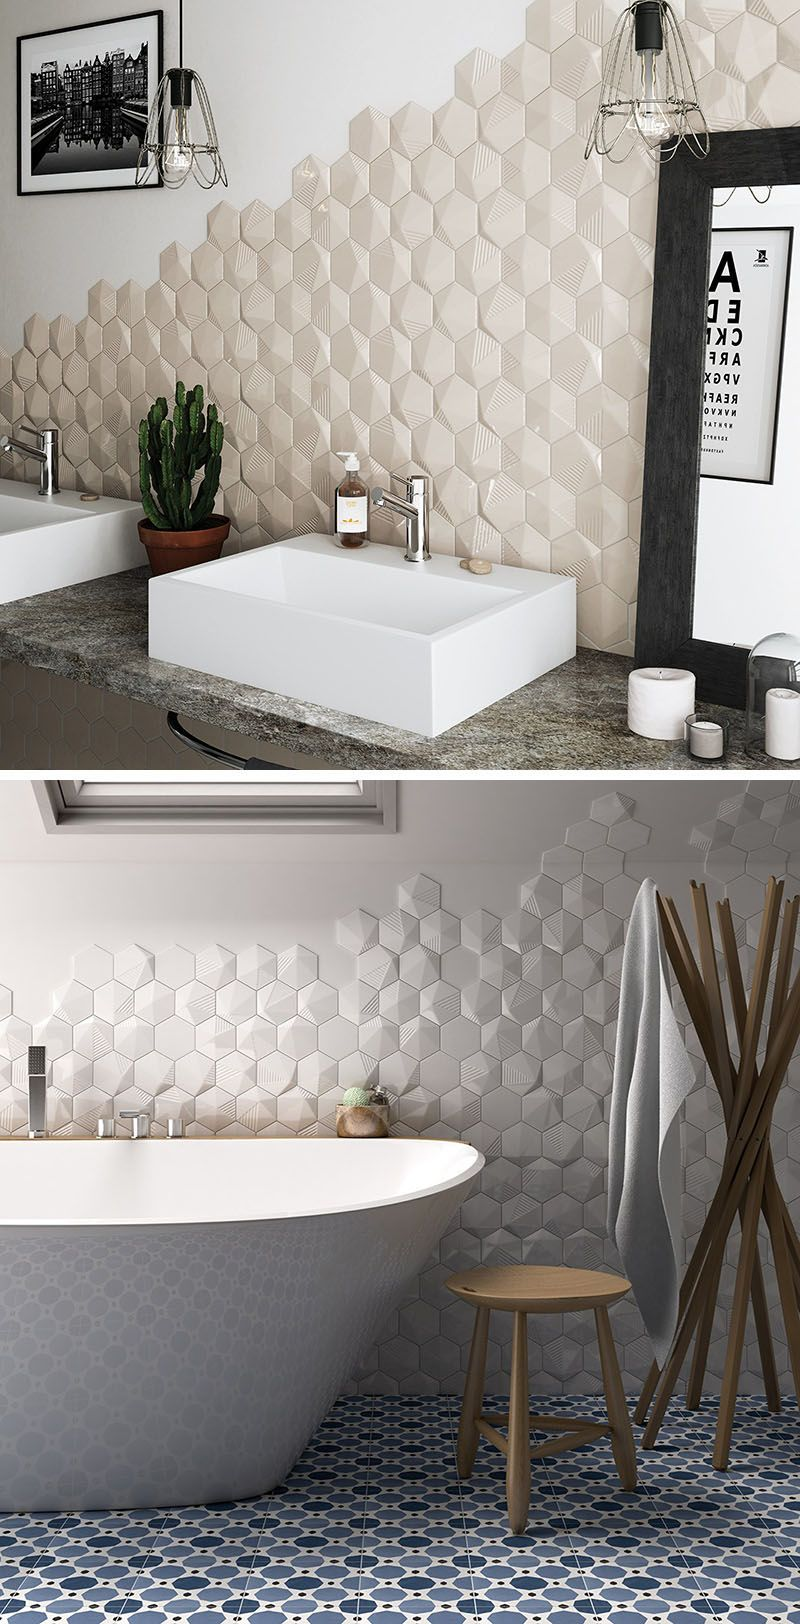 How to fit bathroom tiles - Bathroom Tile Idea Install 3d Tiles To Add Texture To Your Bathroom